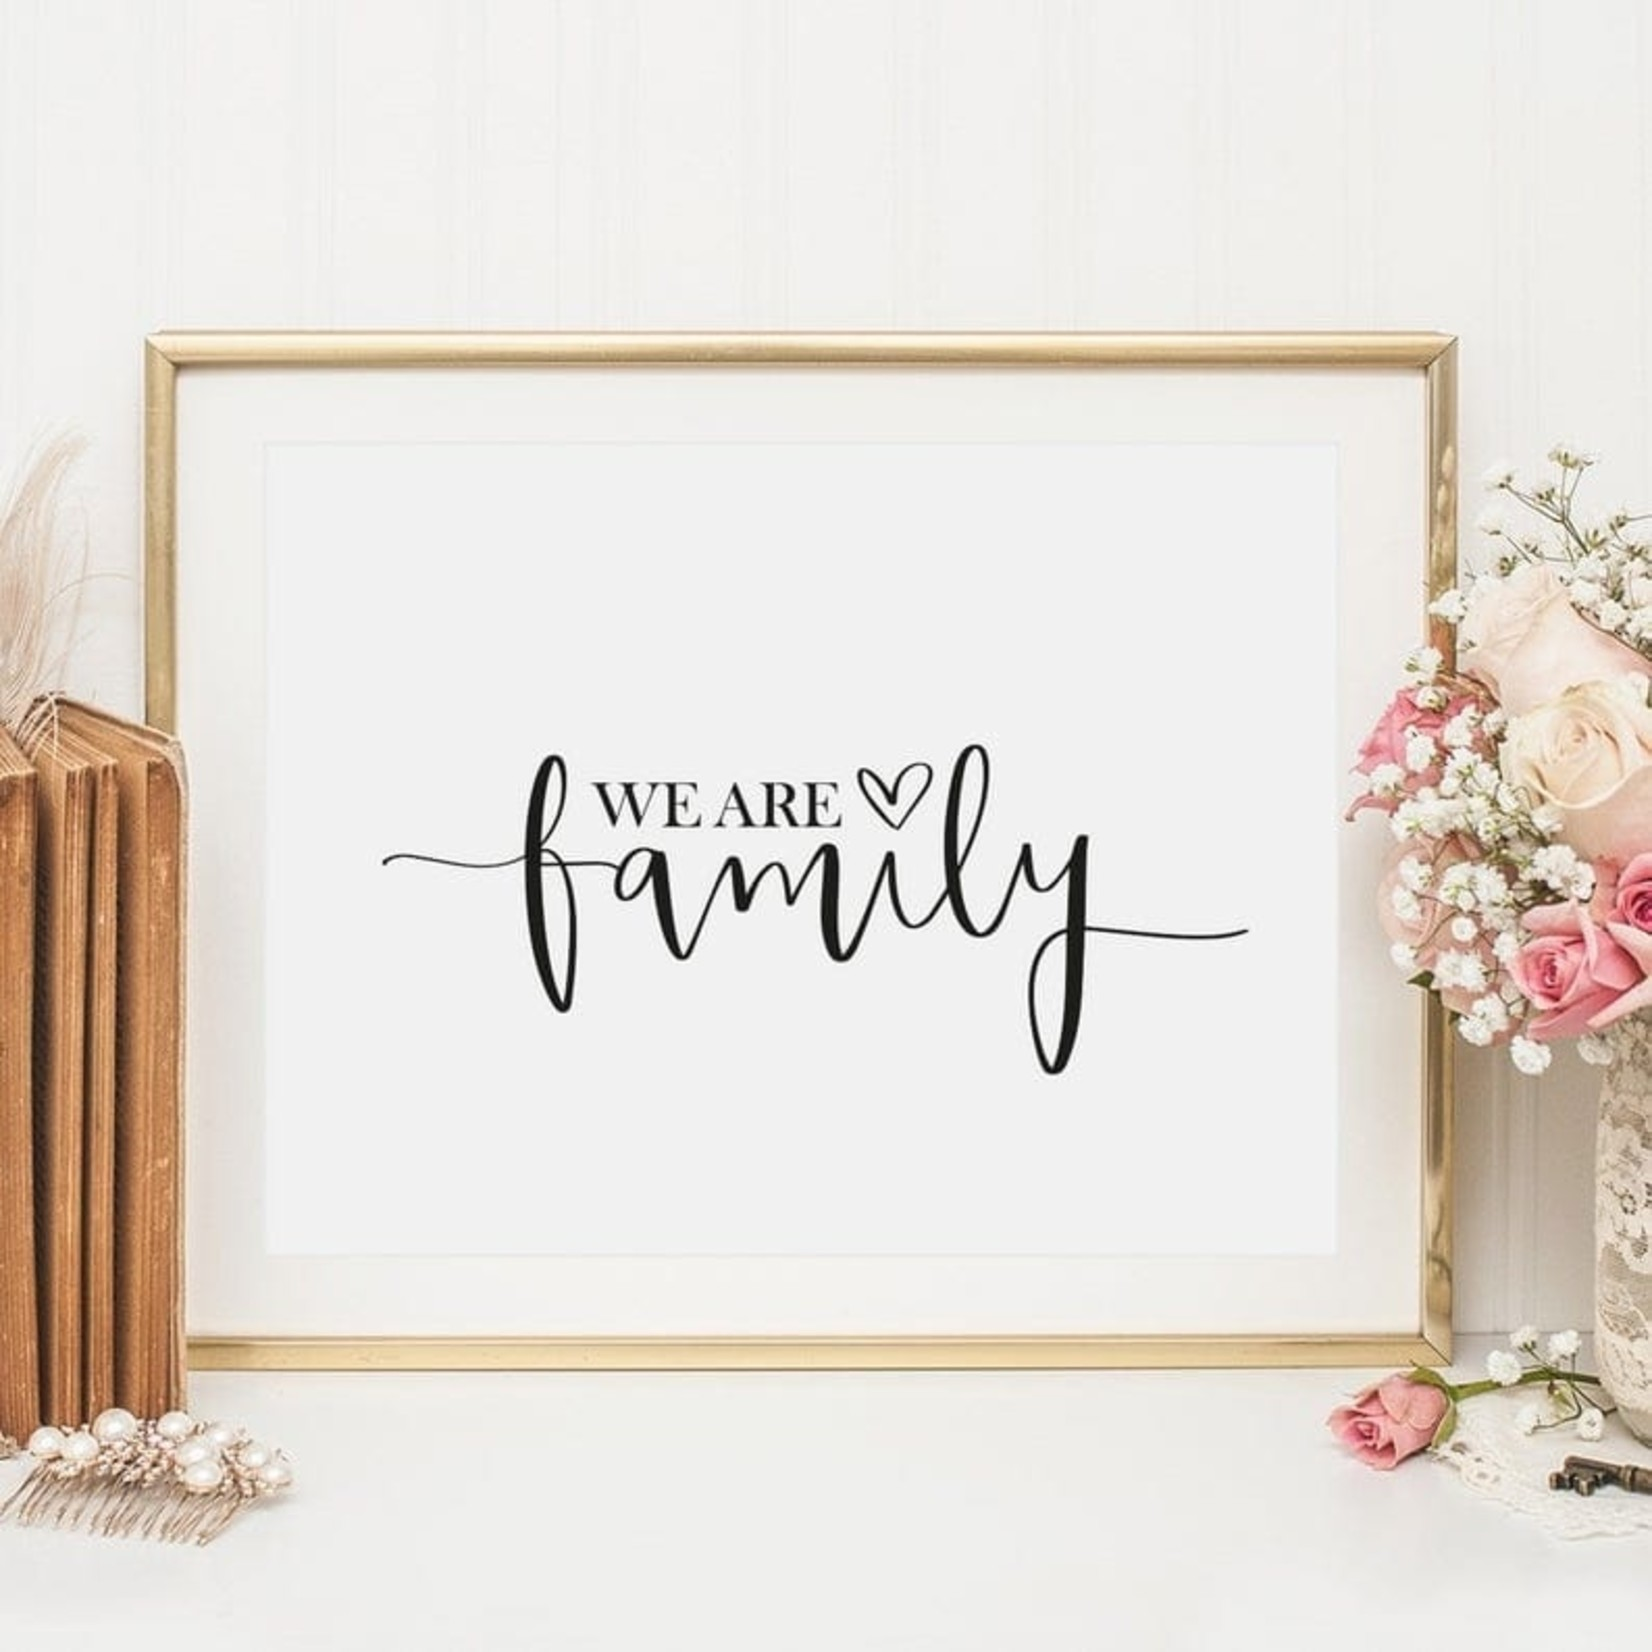 Tales by Jen Poster - We are family - A4 formaat